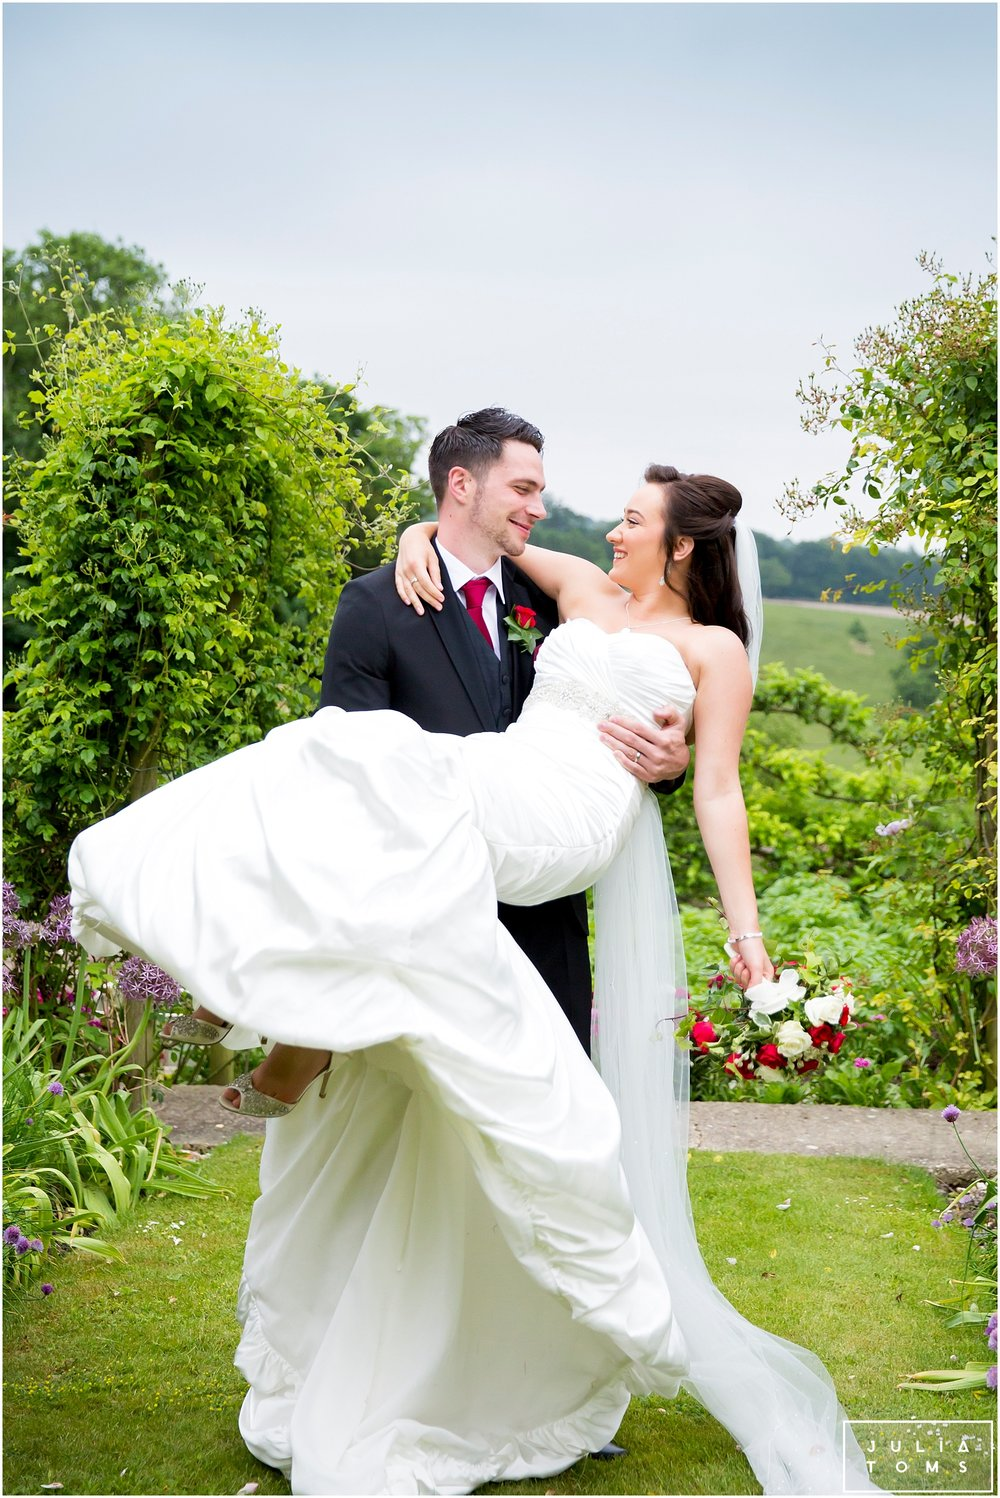 arundel_wedding_photographer_038.jpg